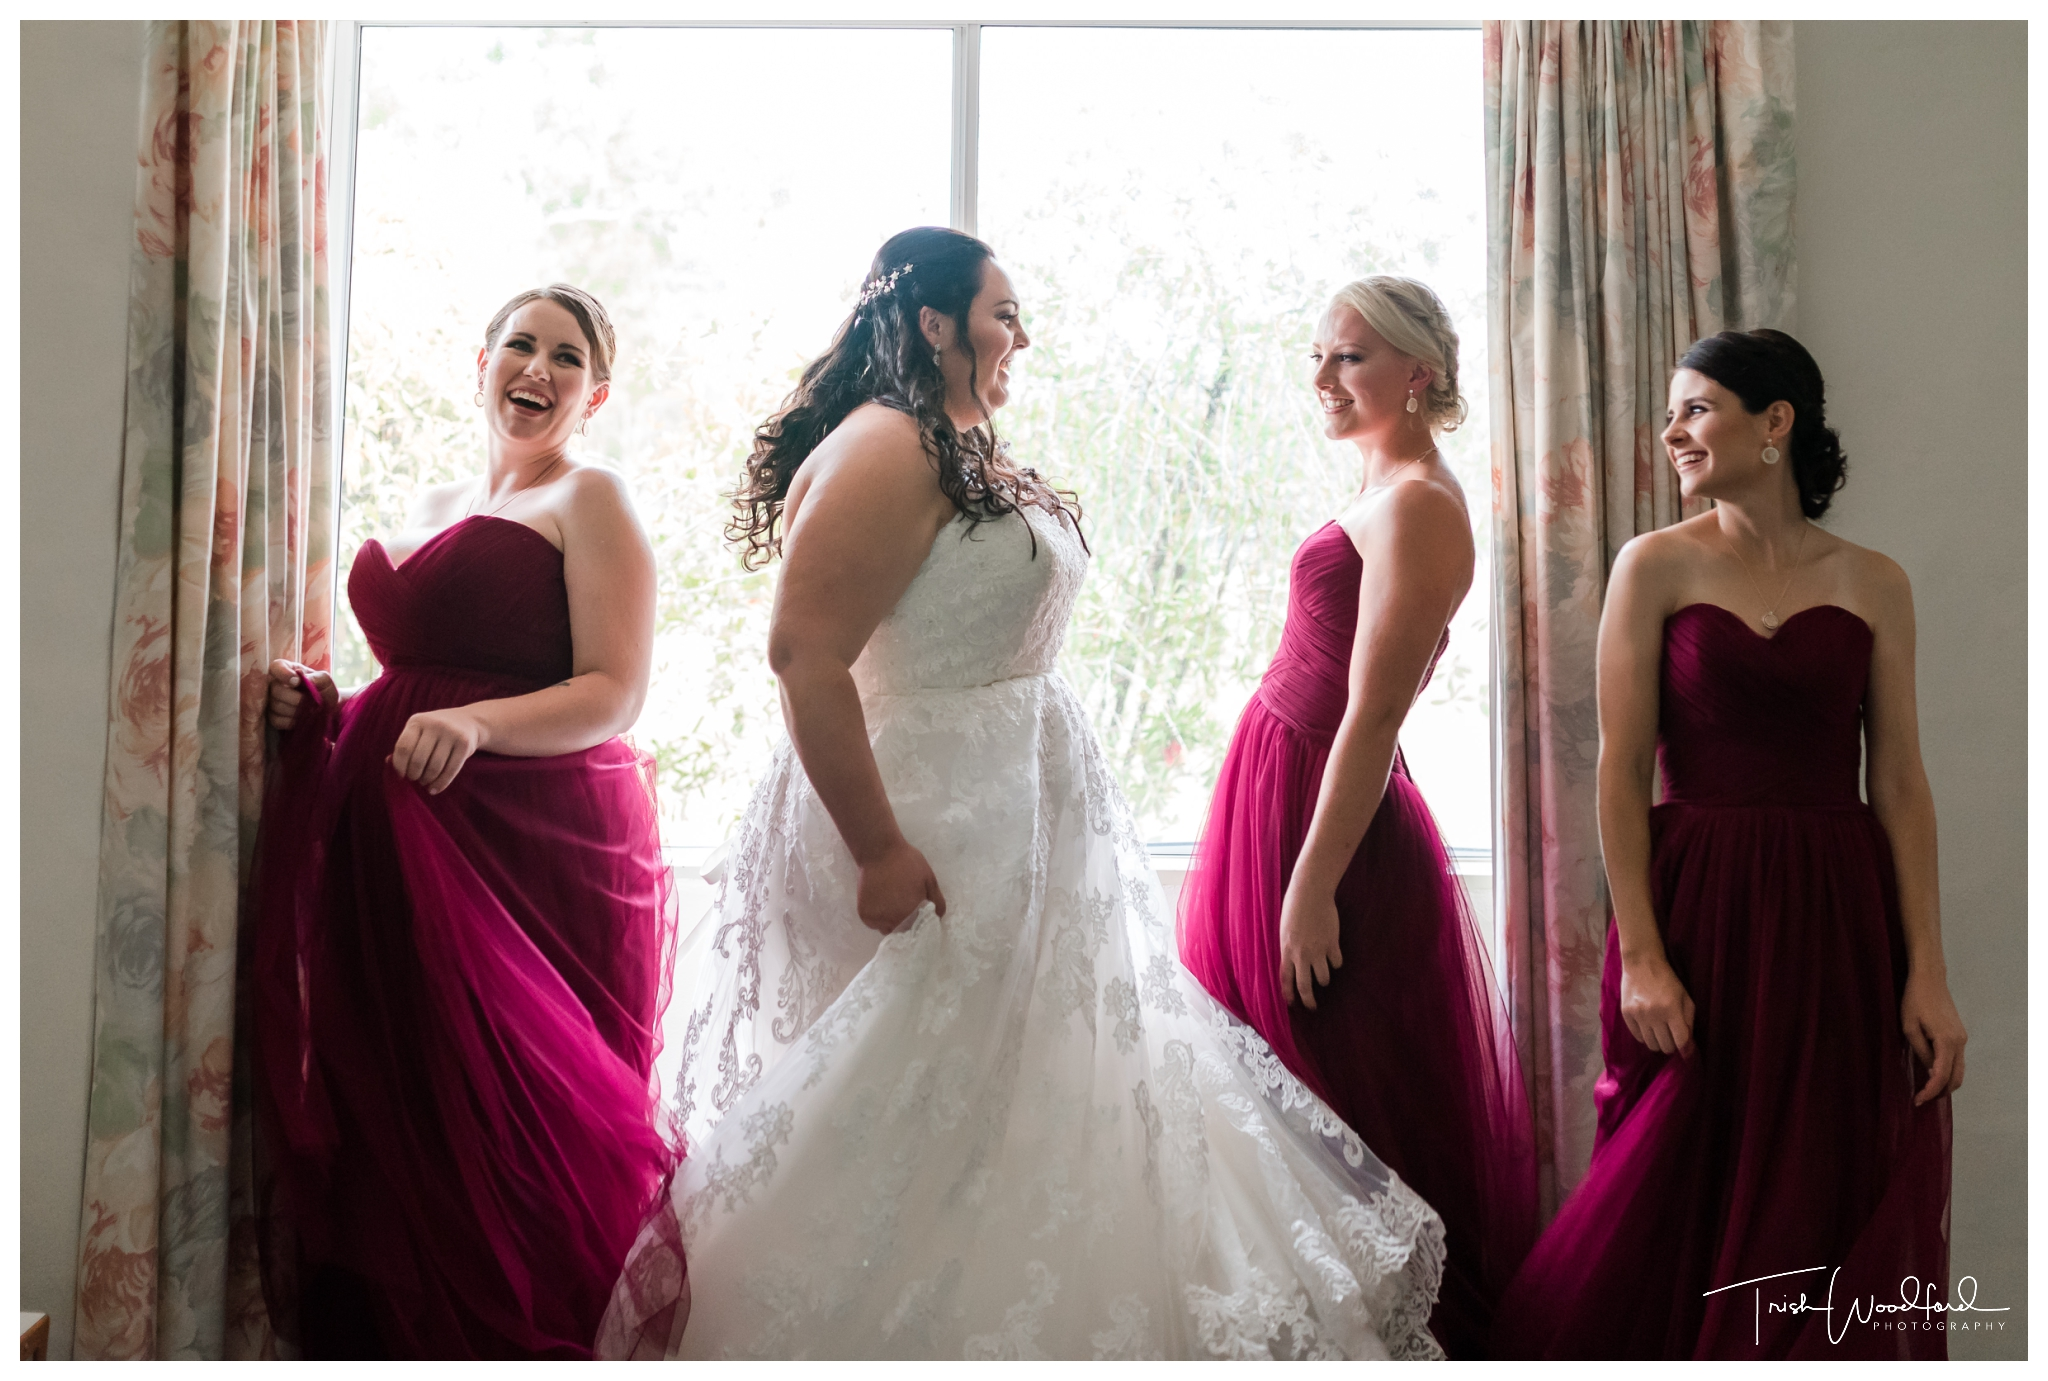 Bride and Bridesmaids Mandurah